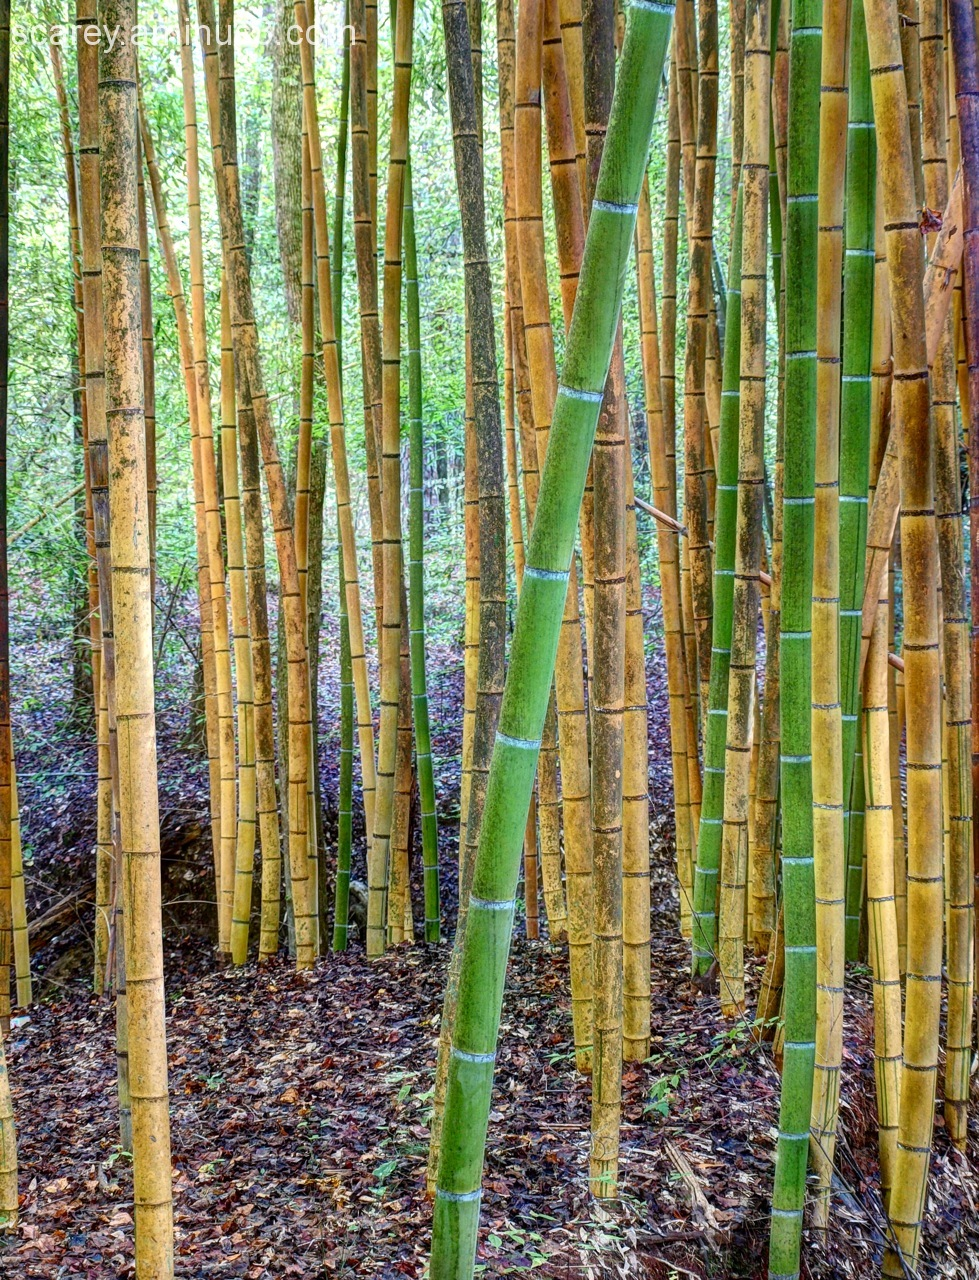 Giant bamboo Wilderness Park Prattville Alabama